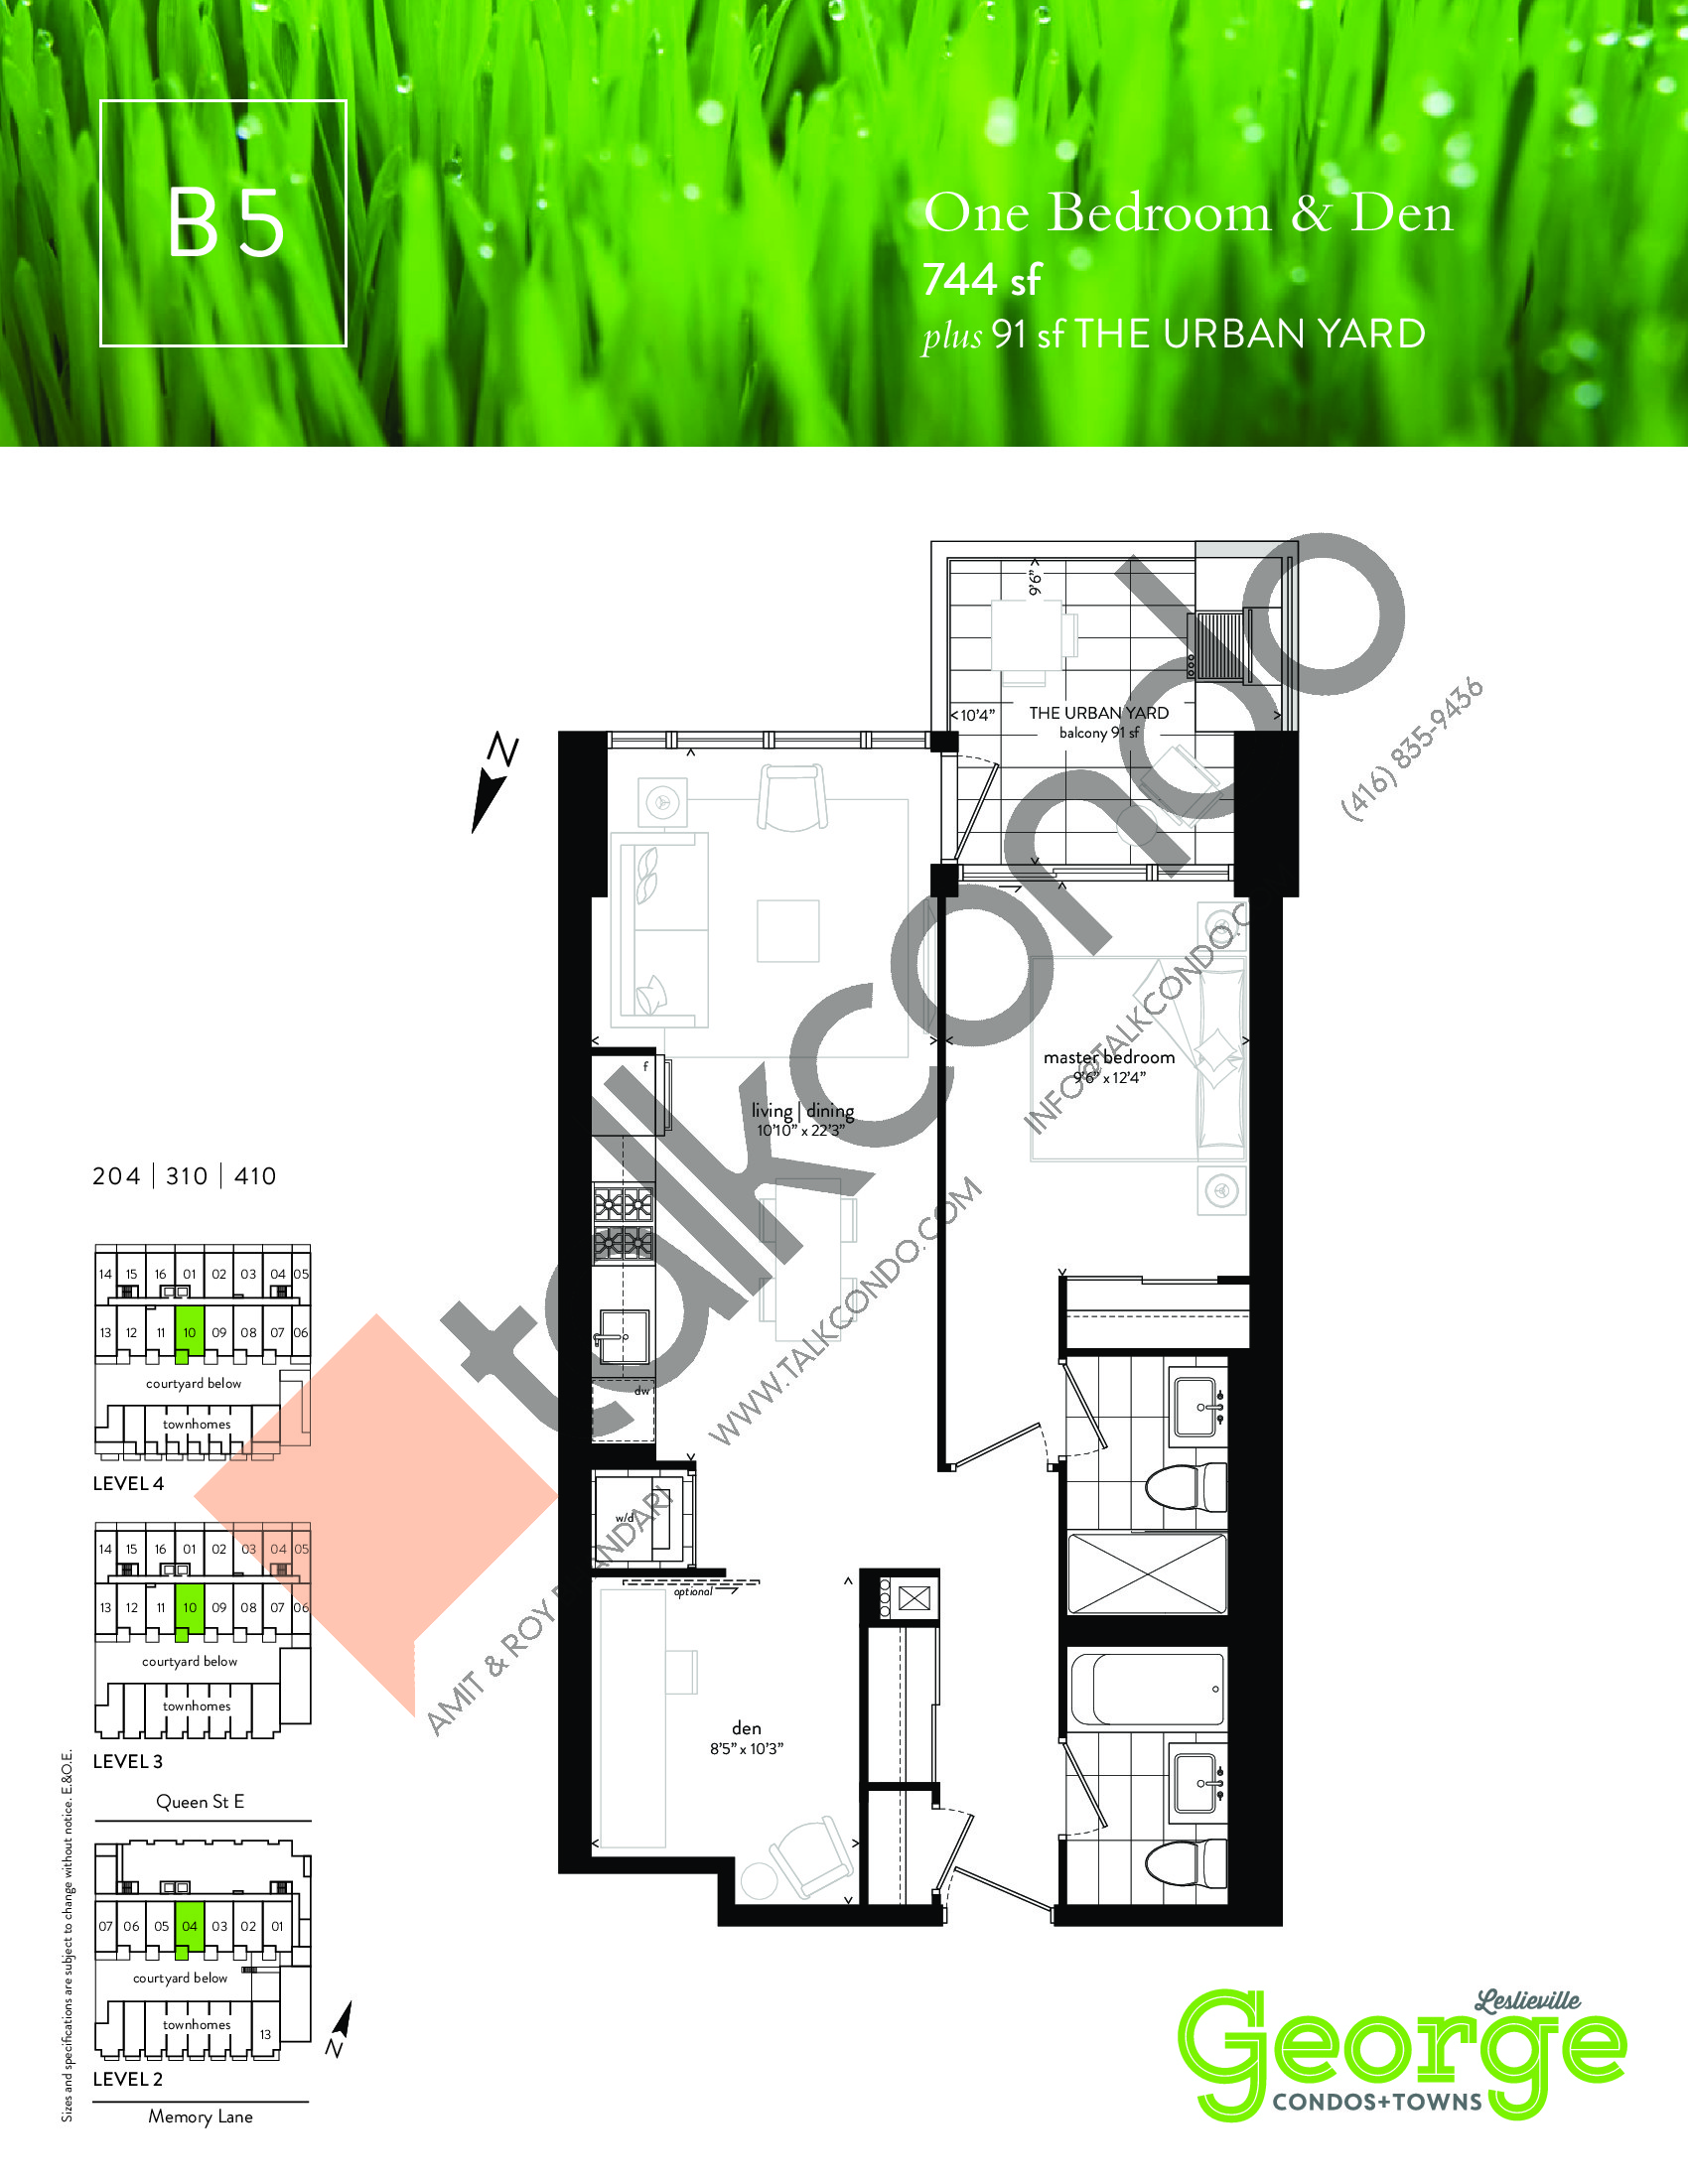 B5 Floor Plan at George Condos & Towns - 744 sq.ft